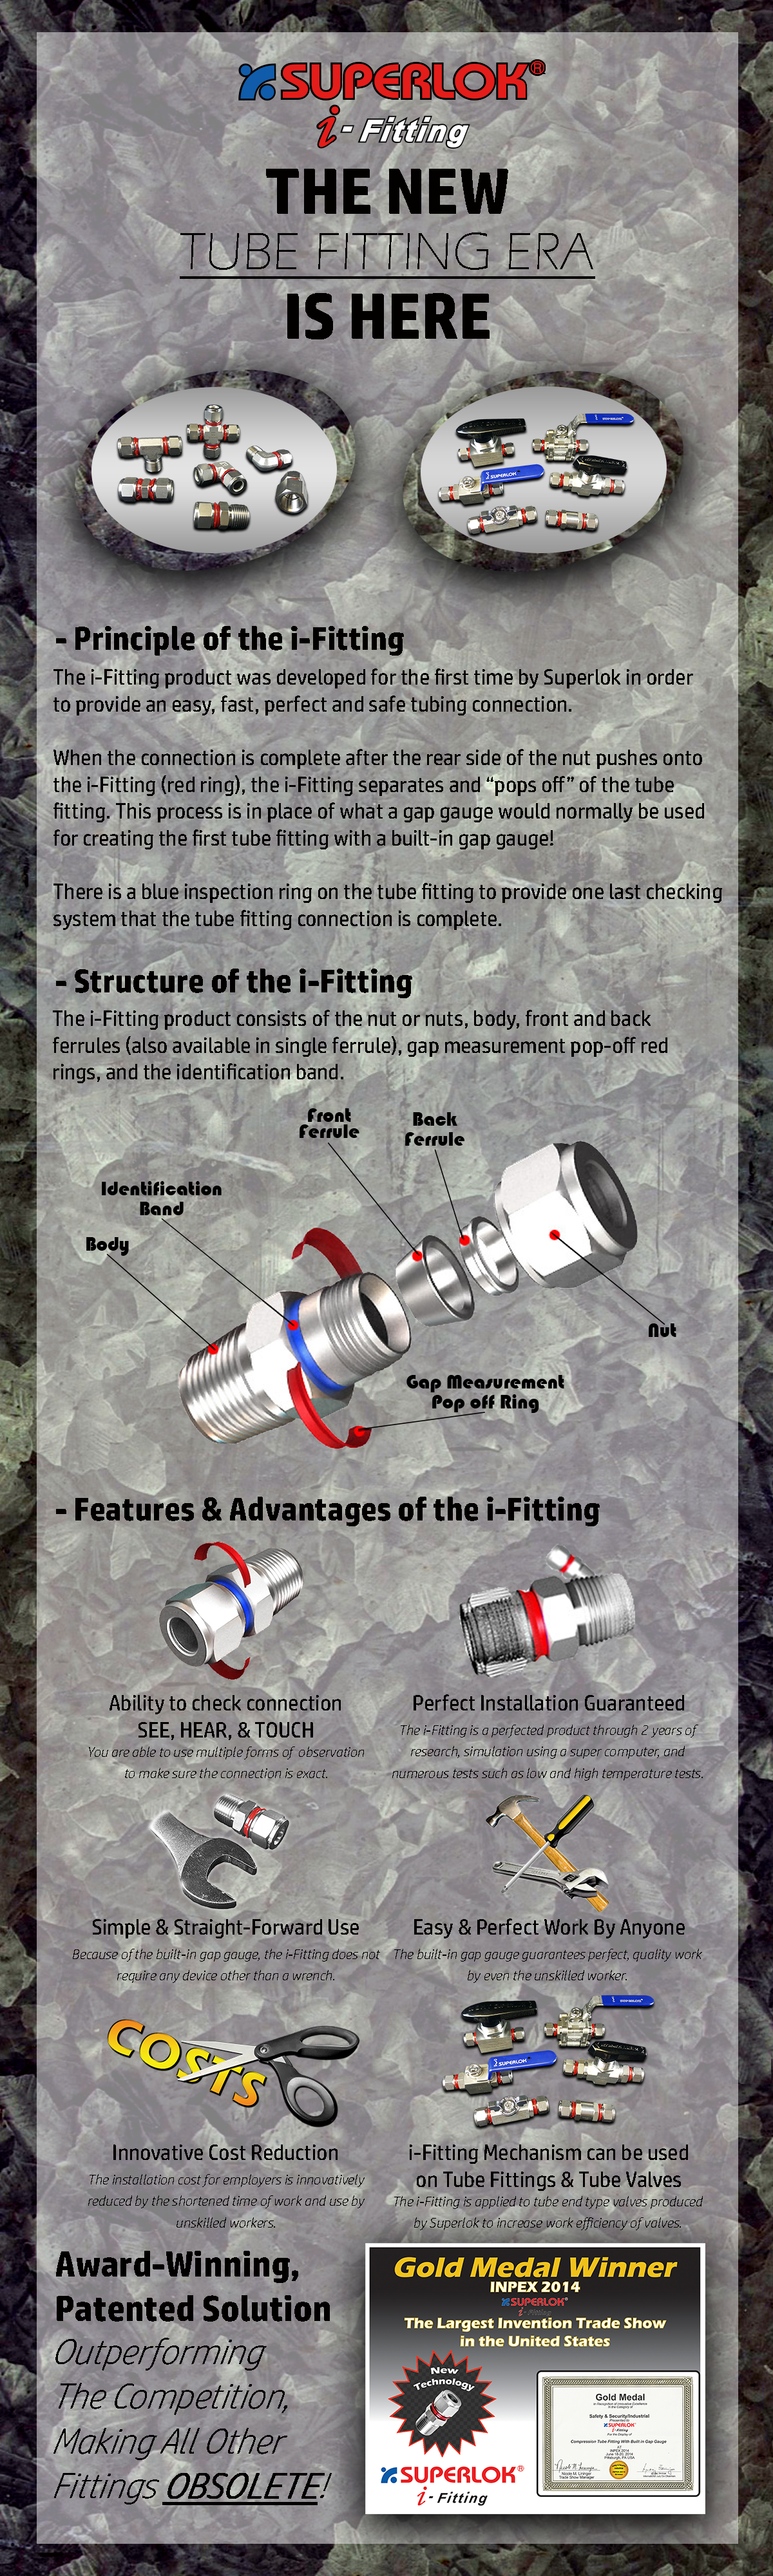 Superlok-Tube-Fittings-Information